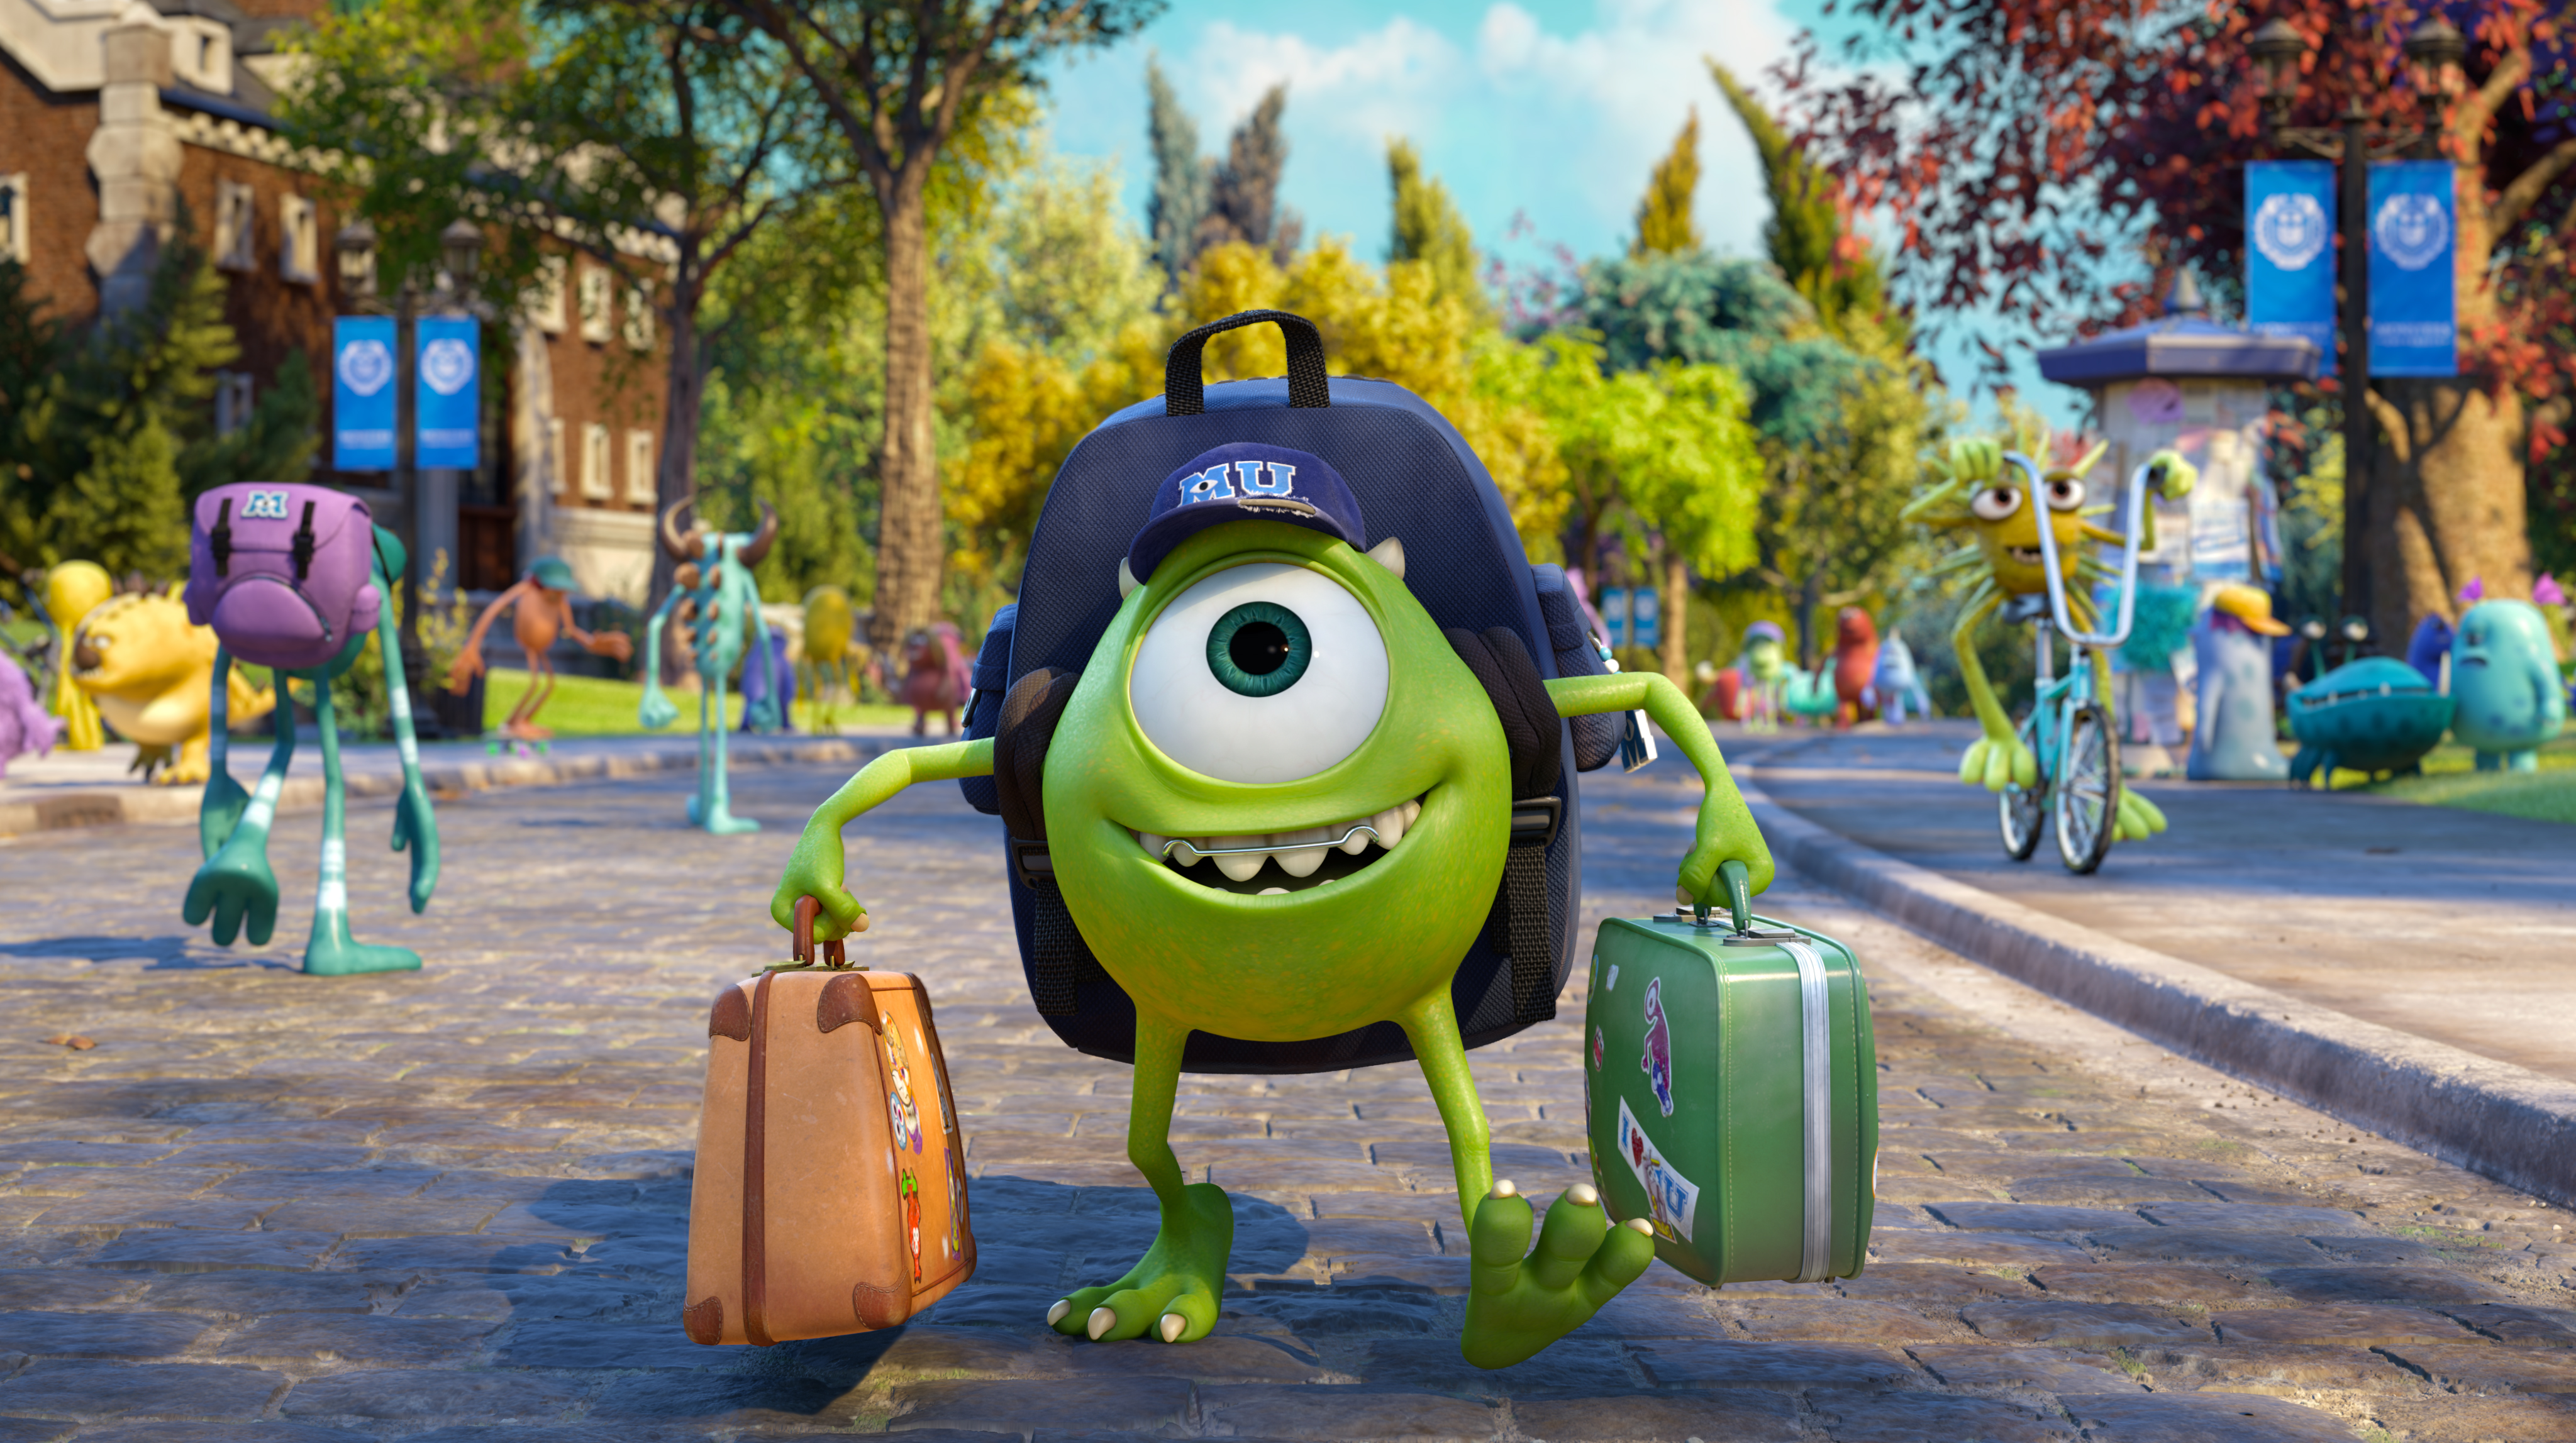 Walt Disney Motion Pictures, disney, movies, kids movies, monsters INC, Monsters University, FROZEN, 2013 films, 2013 movies, 2013 kids movies, 2013 disney movies